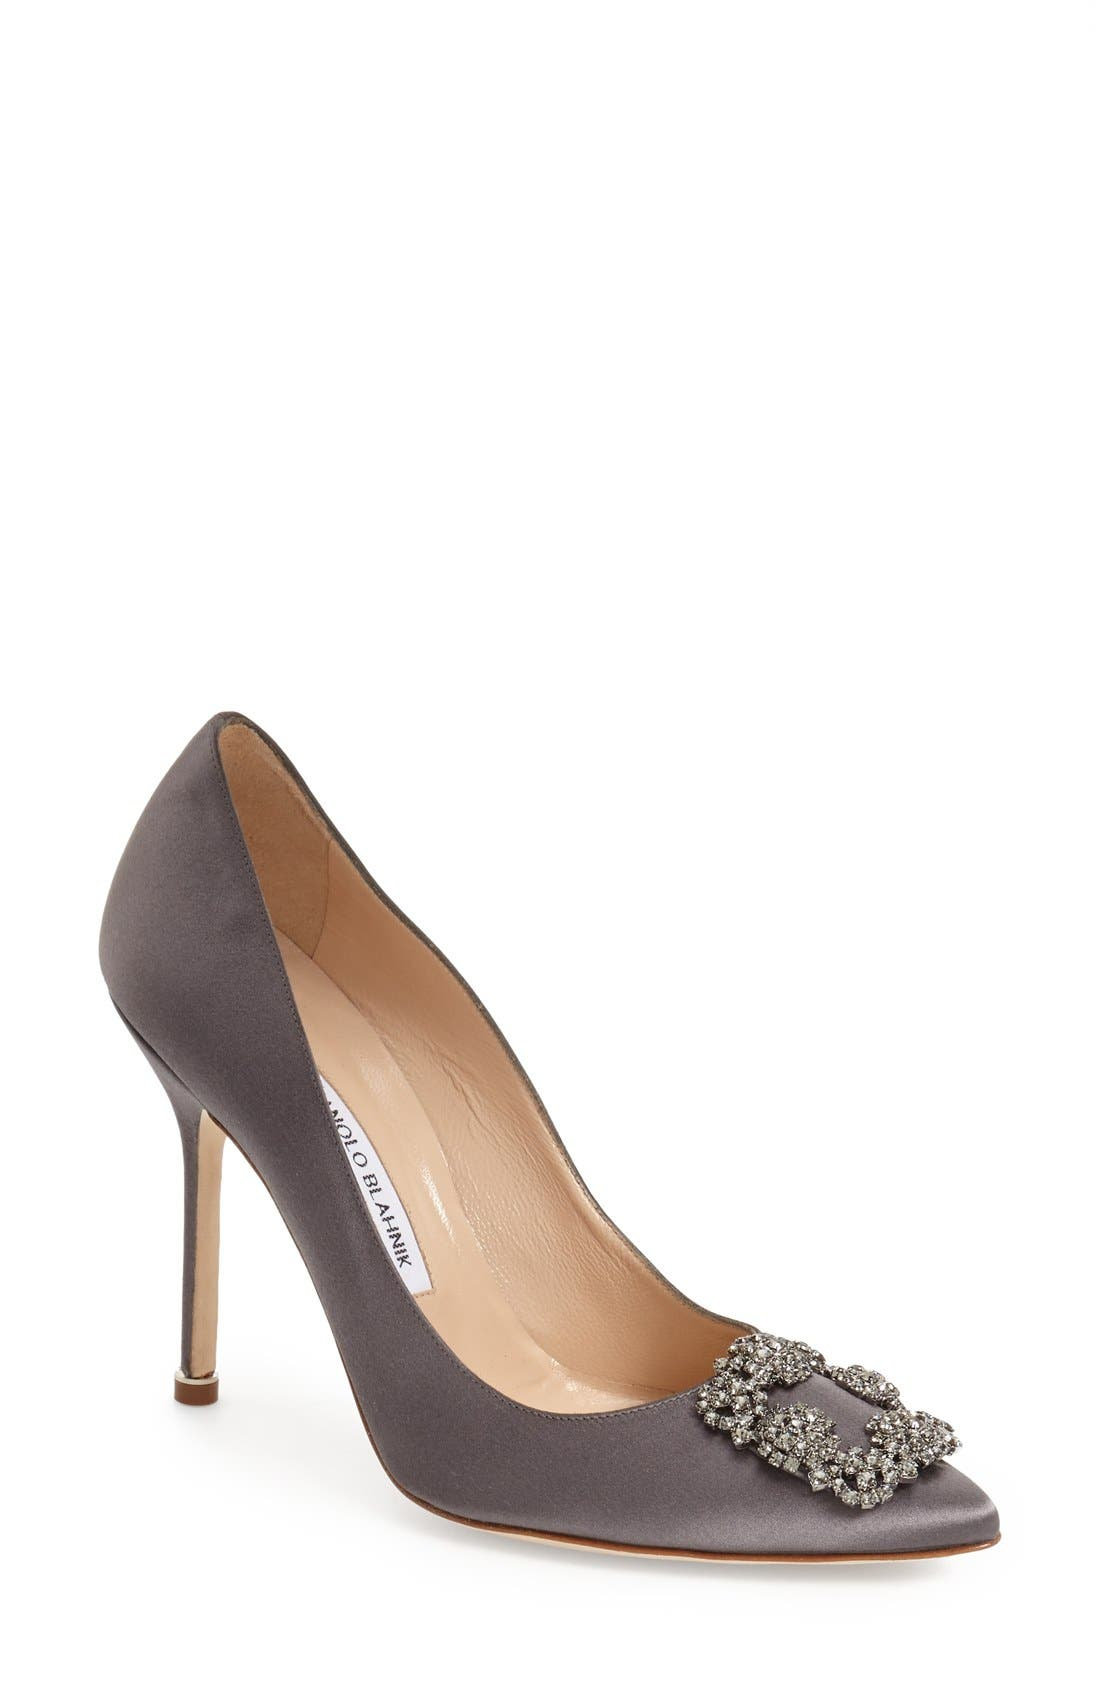 Women's Grey Pumps | Nordstrom